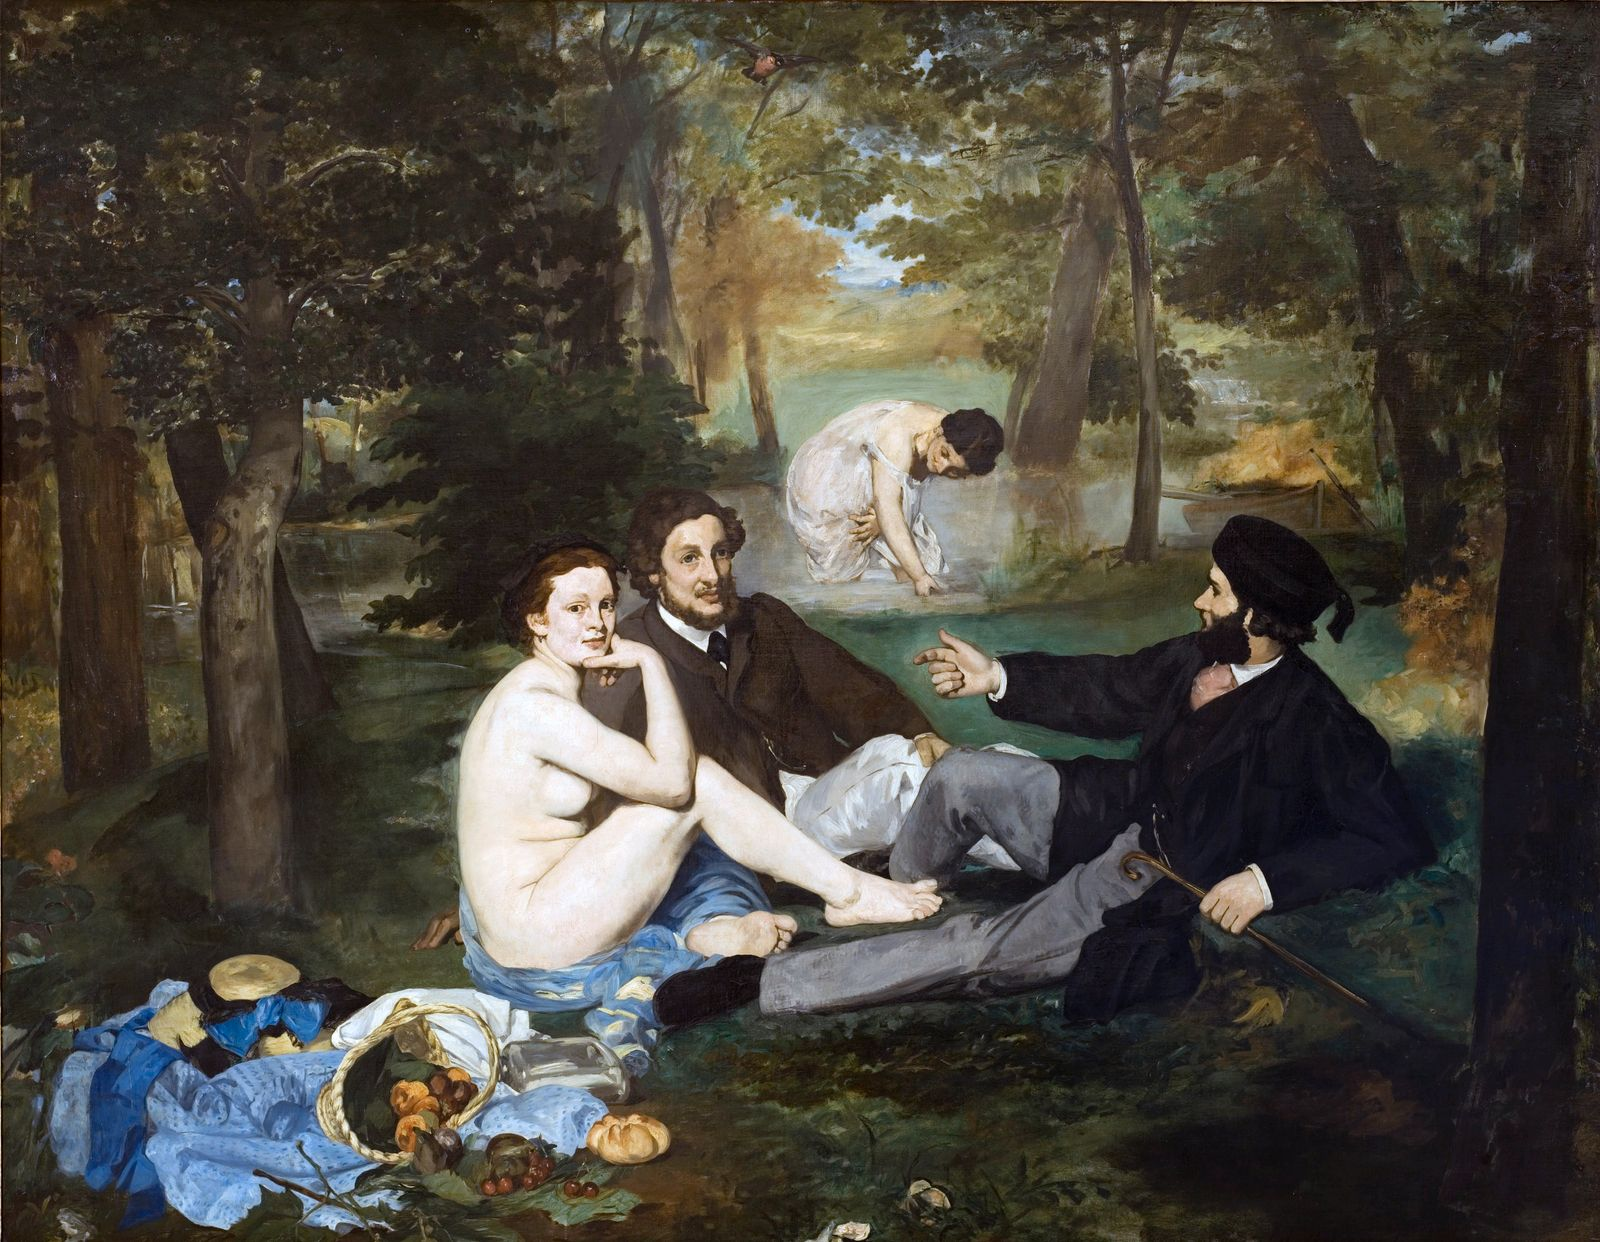 Luncheon on the Grass (Le Déjeuner sur l'herbe) by Édouard Manet